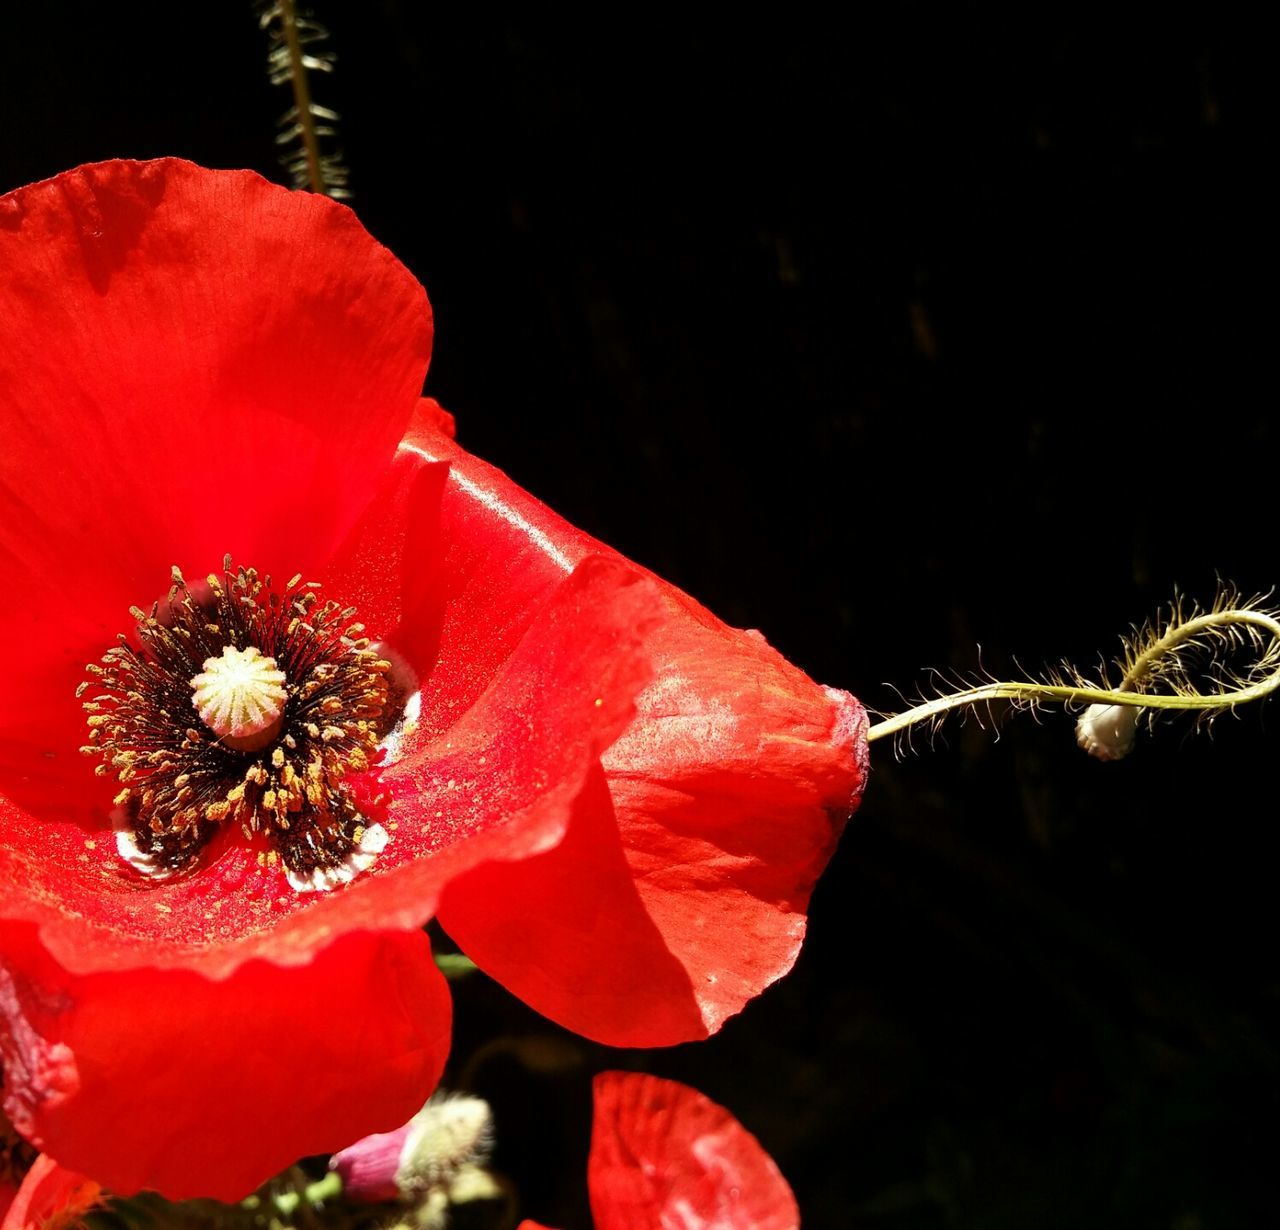 Red Flower Poppy Flowers Flower Head Nature Poppy Freshness Close-up Beauty In Nature Fragility Petal Black Background Plant Outdoors Growth